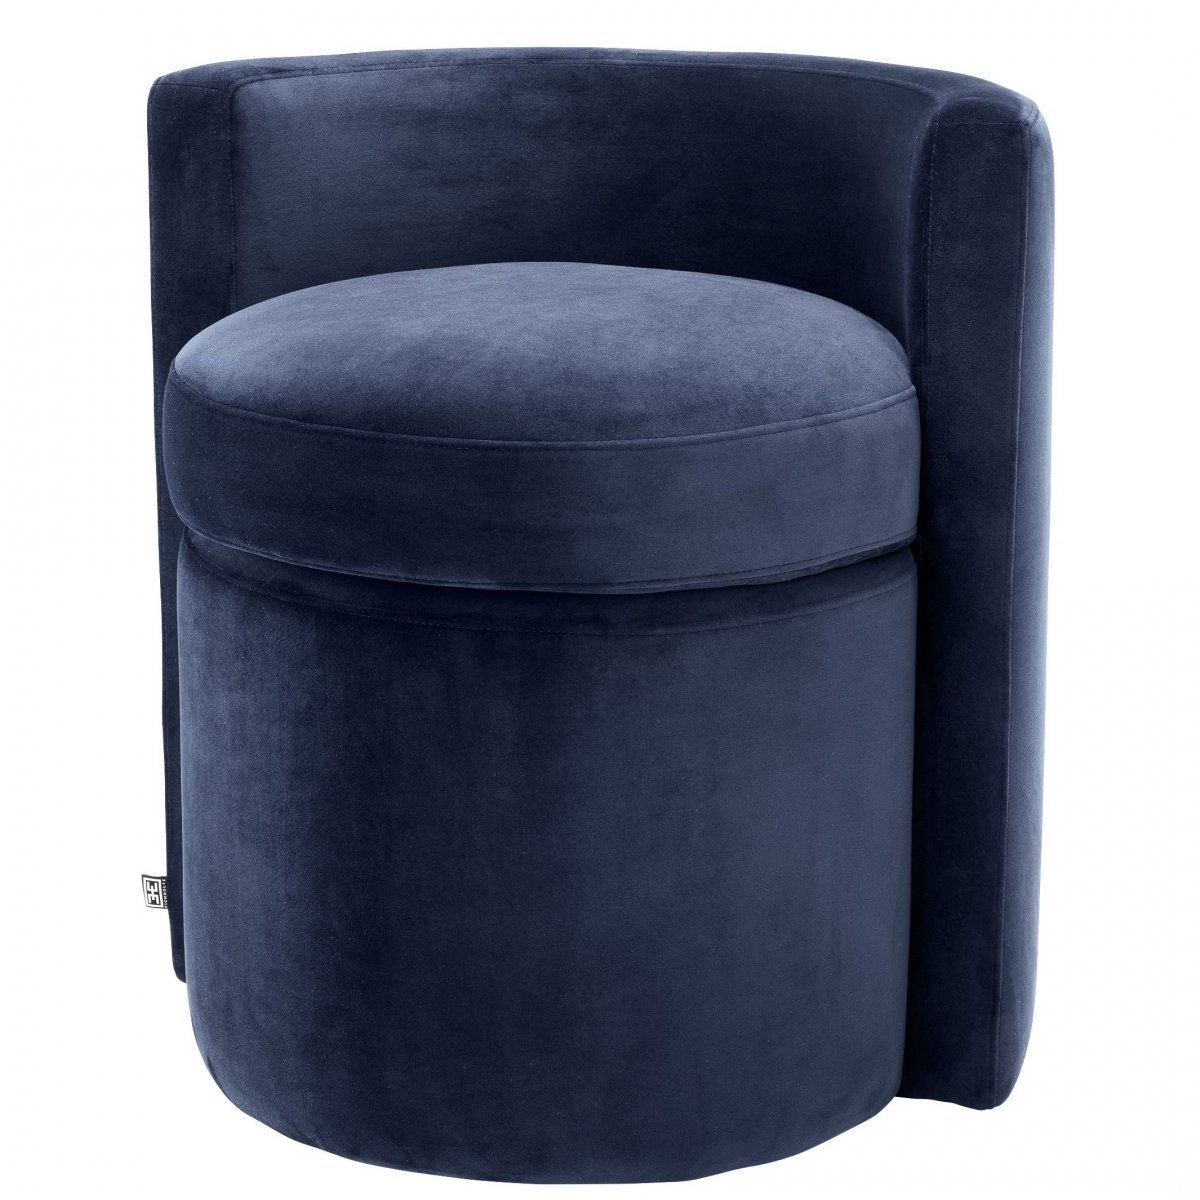 Кресло Eichholtz Stool Arcadia midnight blue